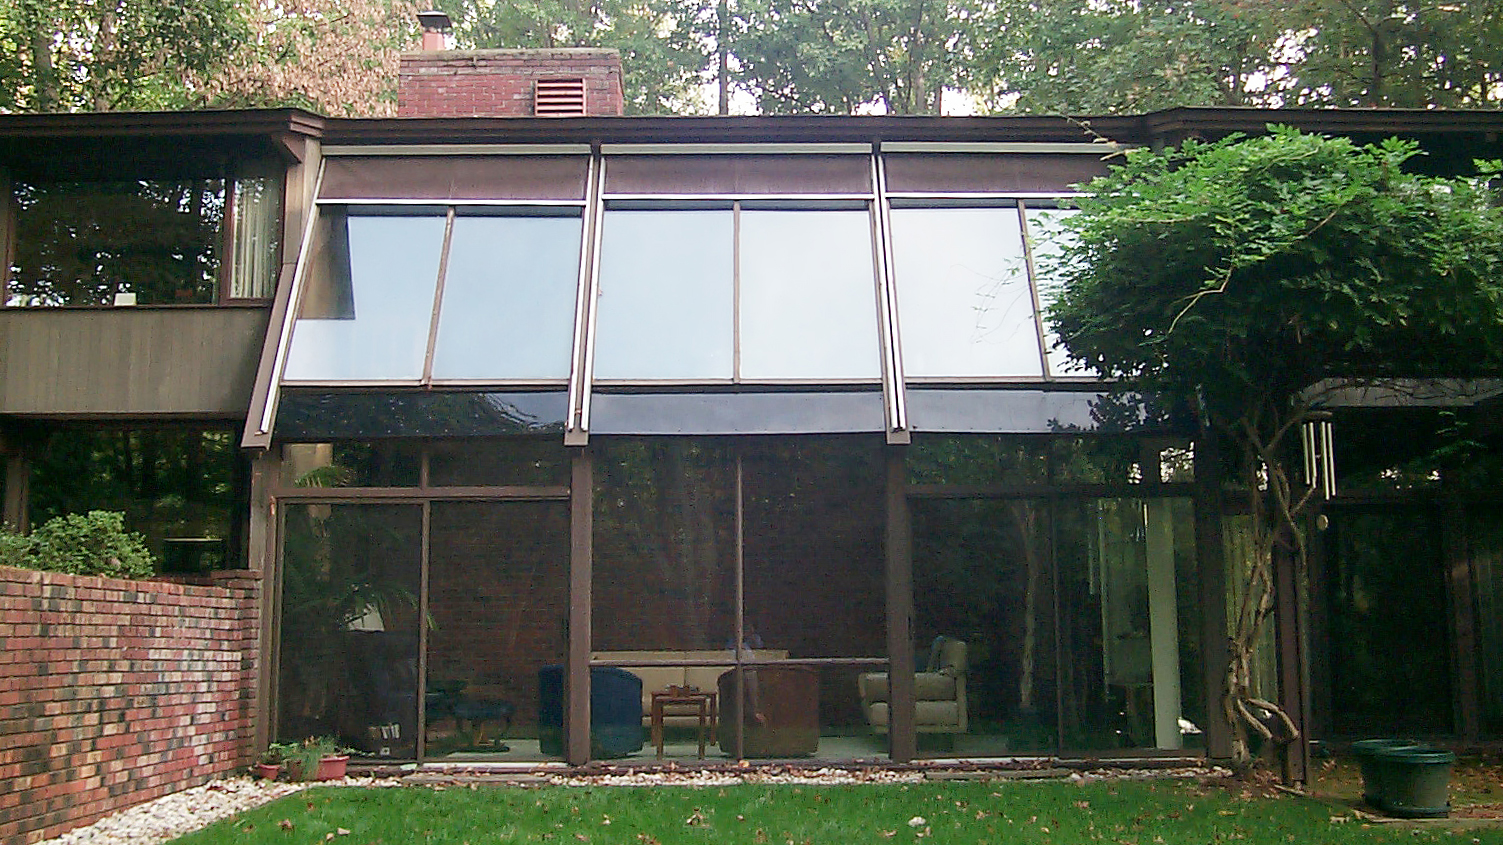 Straight eave lean-to sunroom with no gable ends, retractable exterior screens, mahongany interior, and sliding doors.Straight eave lean-to sunroom with no gable ends, retractable exterior screens, mahongany interior, and sliding doors.